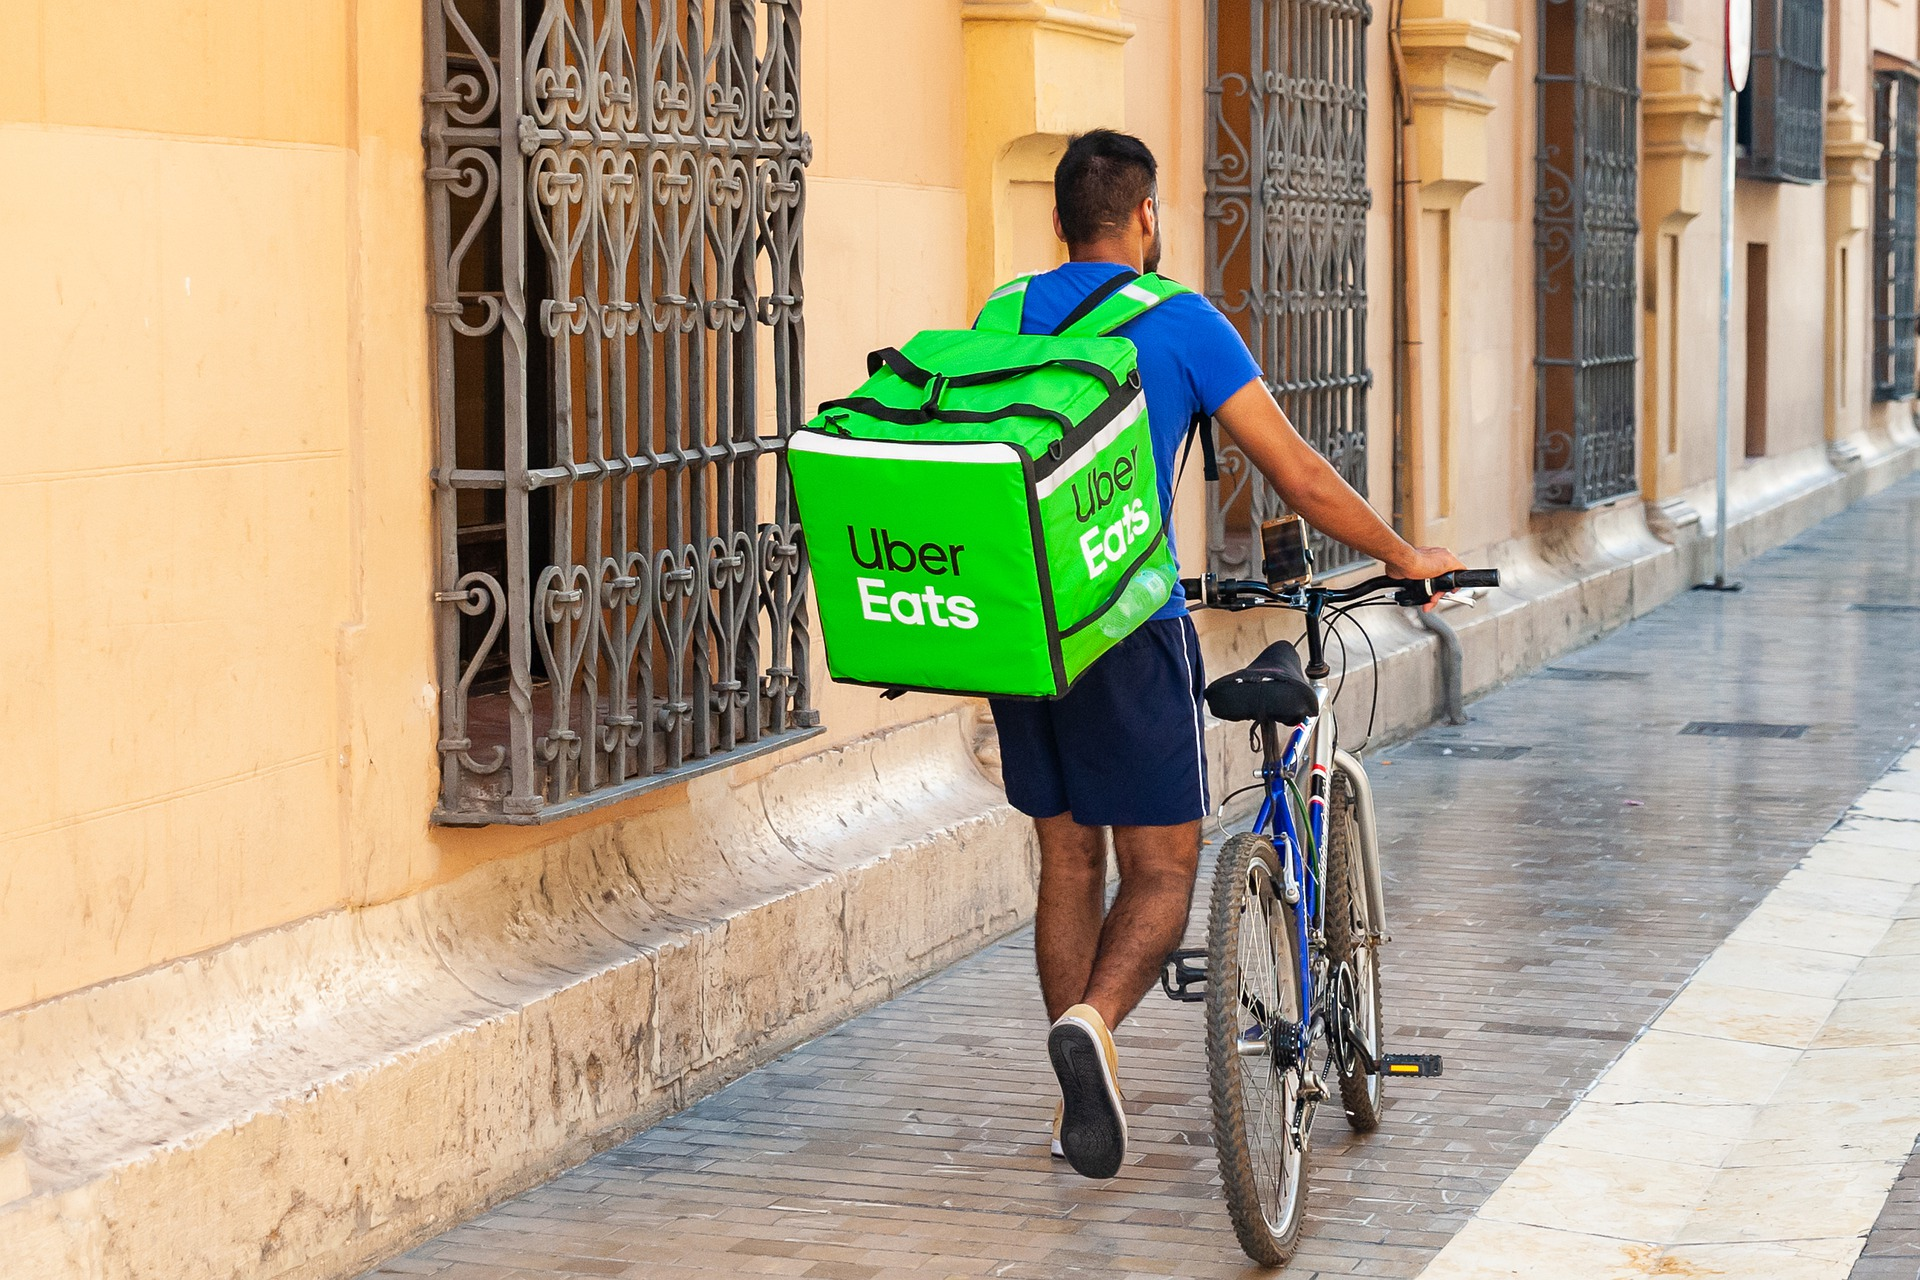 Why Is Postmates So Expensive?